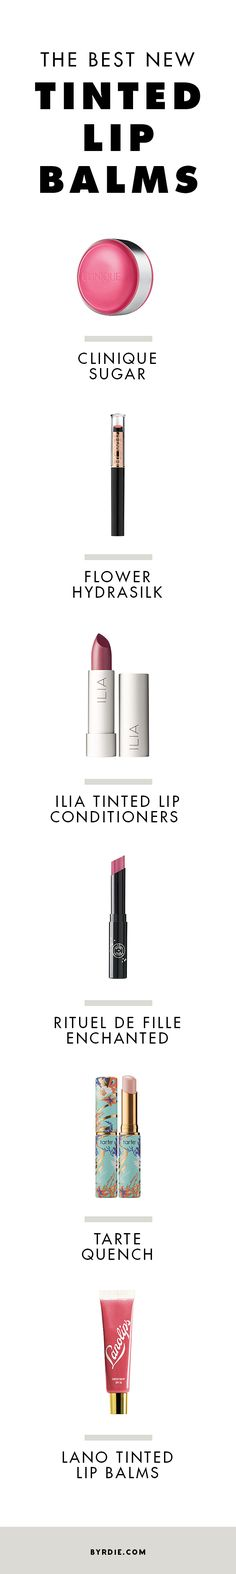 7 new lip balms to add to your makeup bag